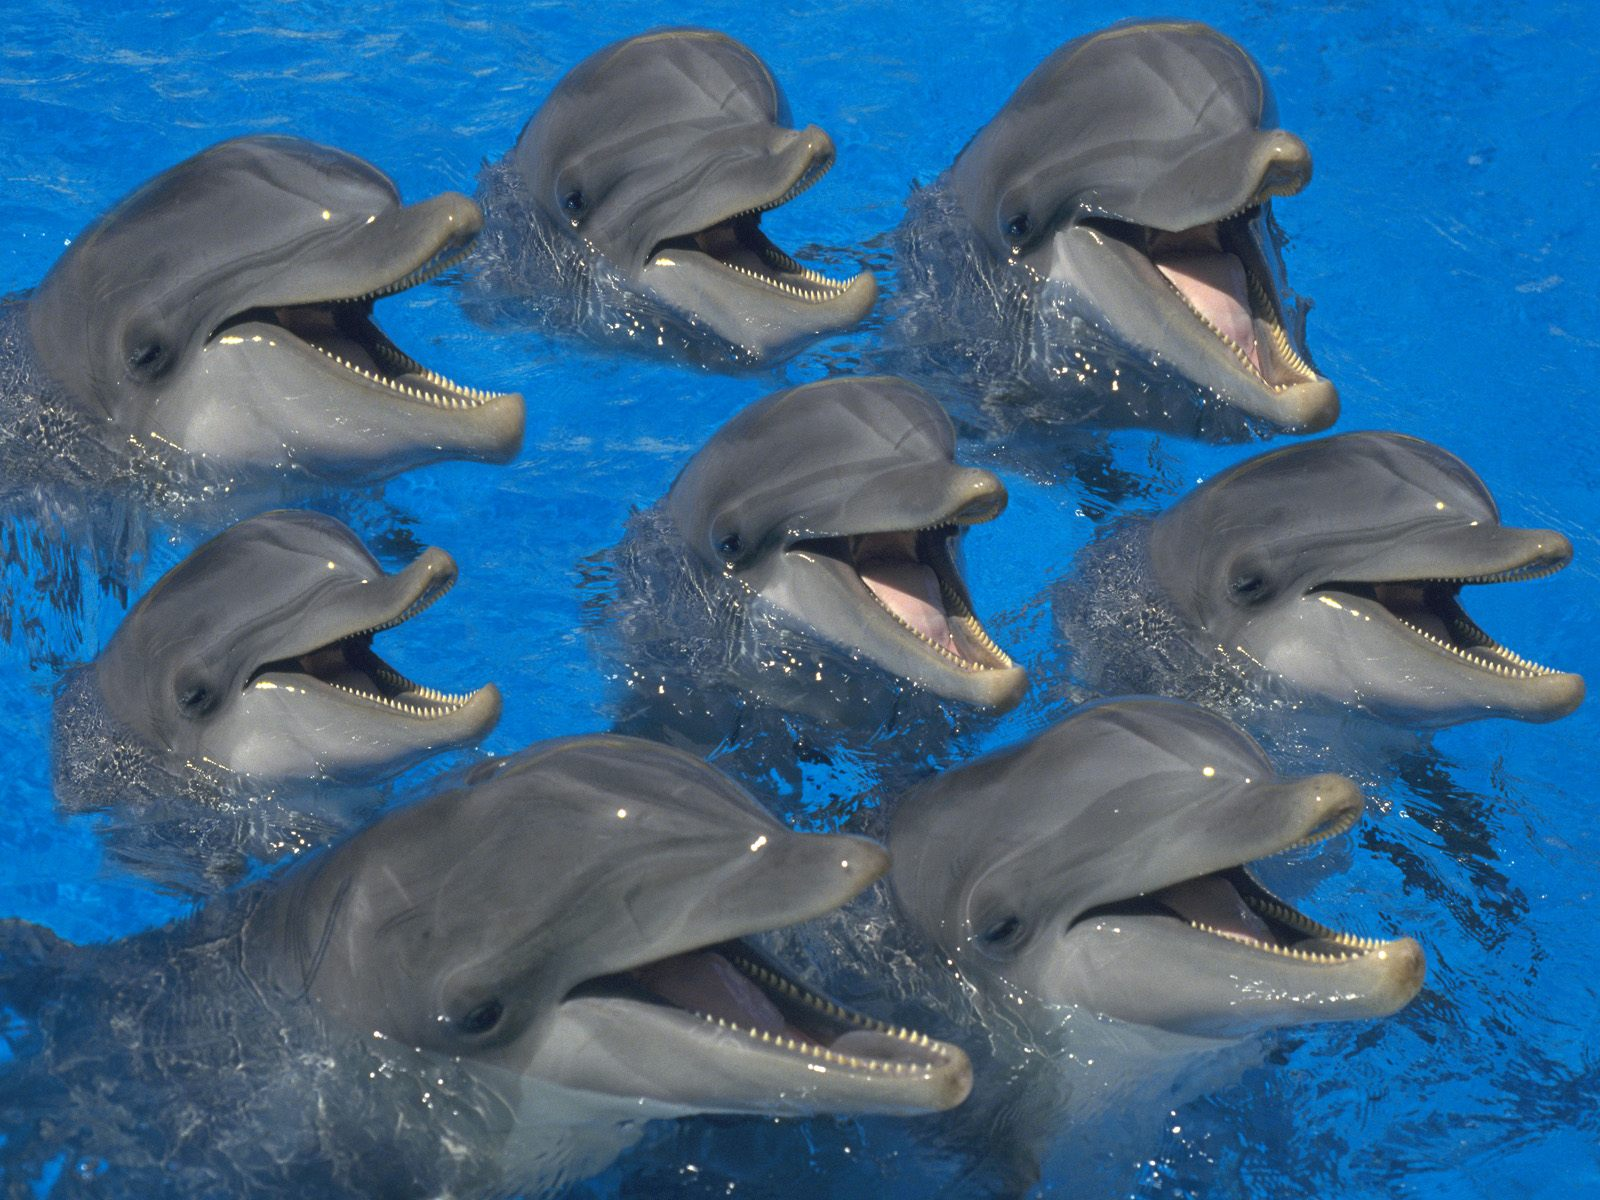 HQ Bottlenose Dolphins Wallpaper   HQ Wallpapers 1600x1200